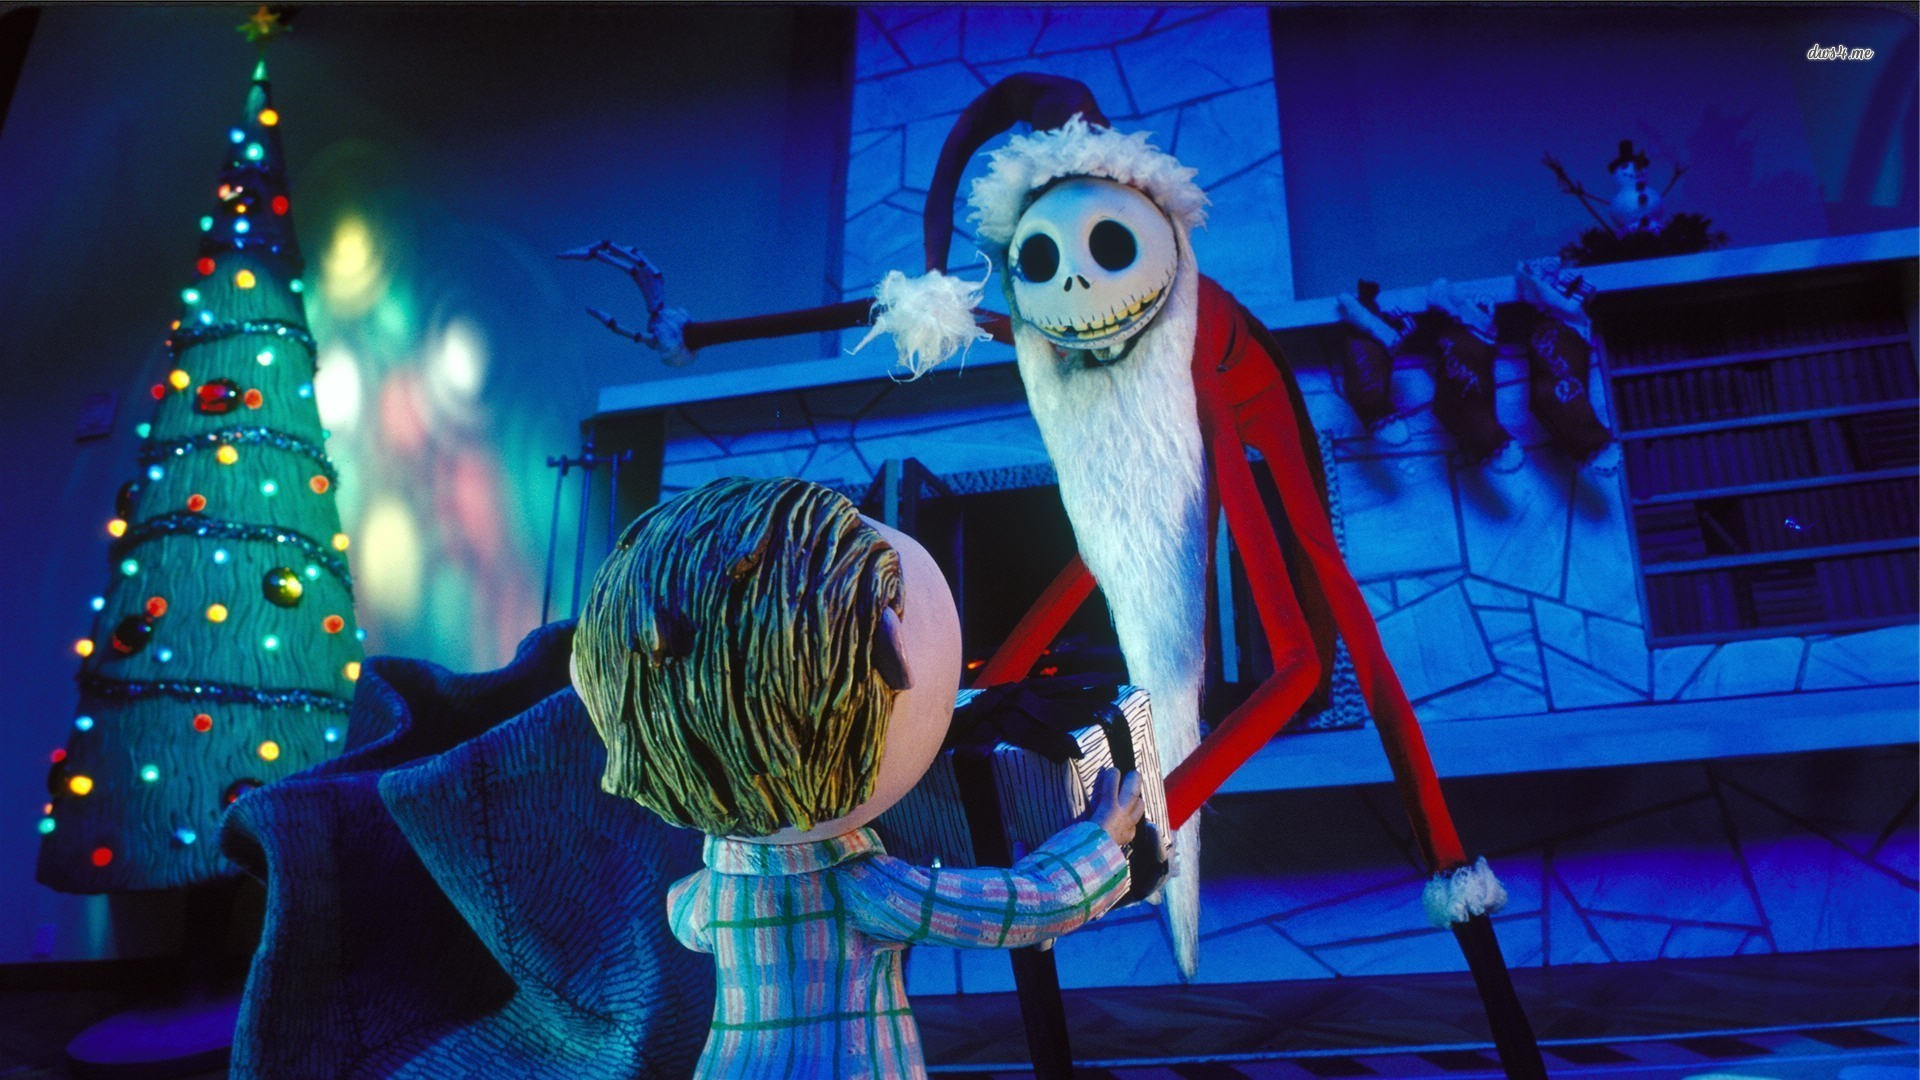 nightmare before christmas wallpaper 1920x1080